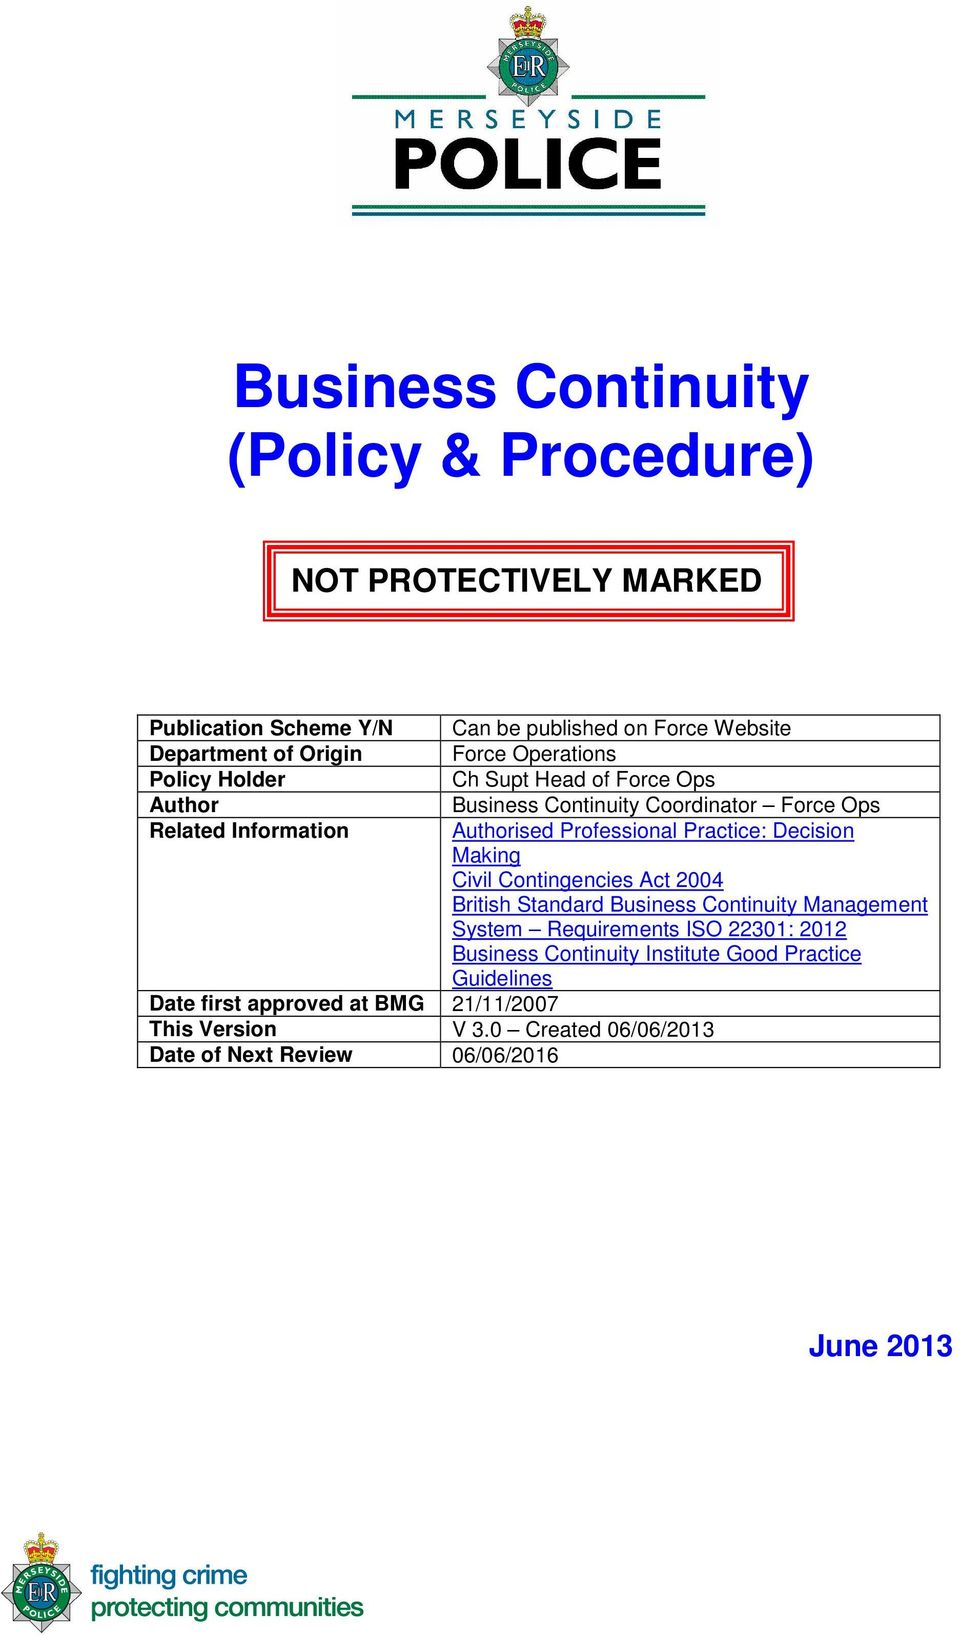 Making Civil Contingencies Act 2004 British Standard Business Continuity Management System Requirements ISO 22301: 2012 Business Continuity